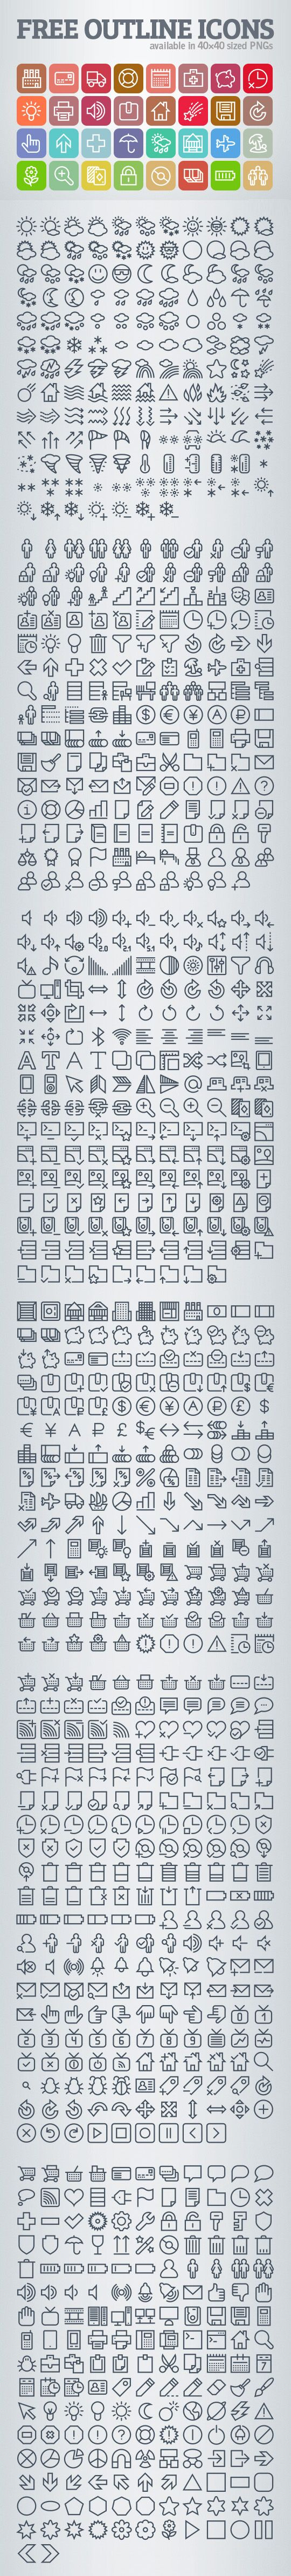 1000+ Free Outline Icons #outlineicons #freeicons #iconset